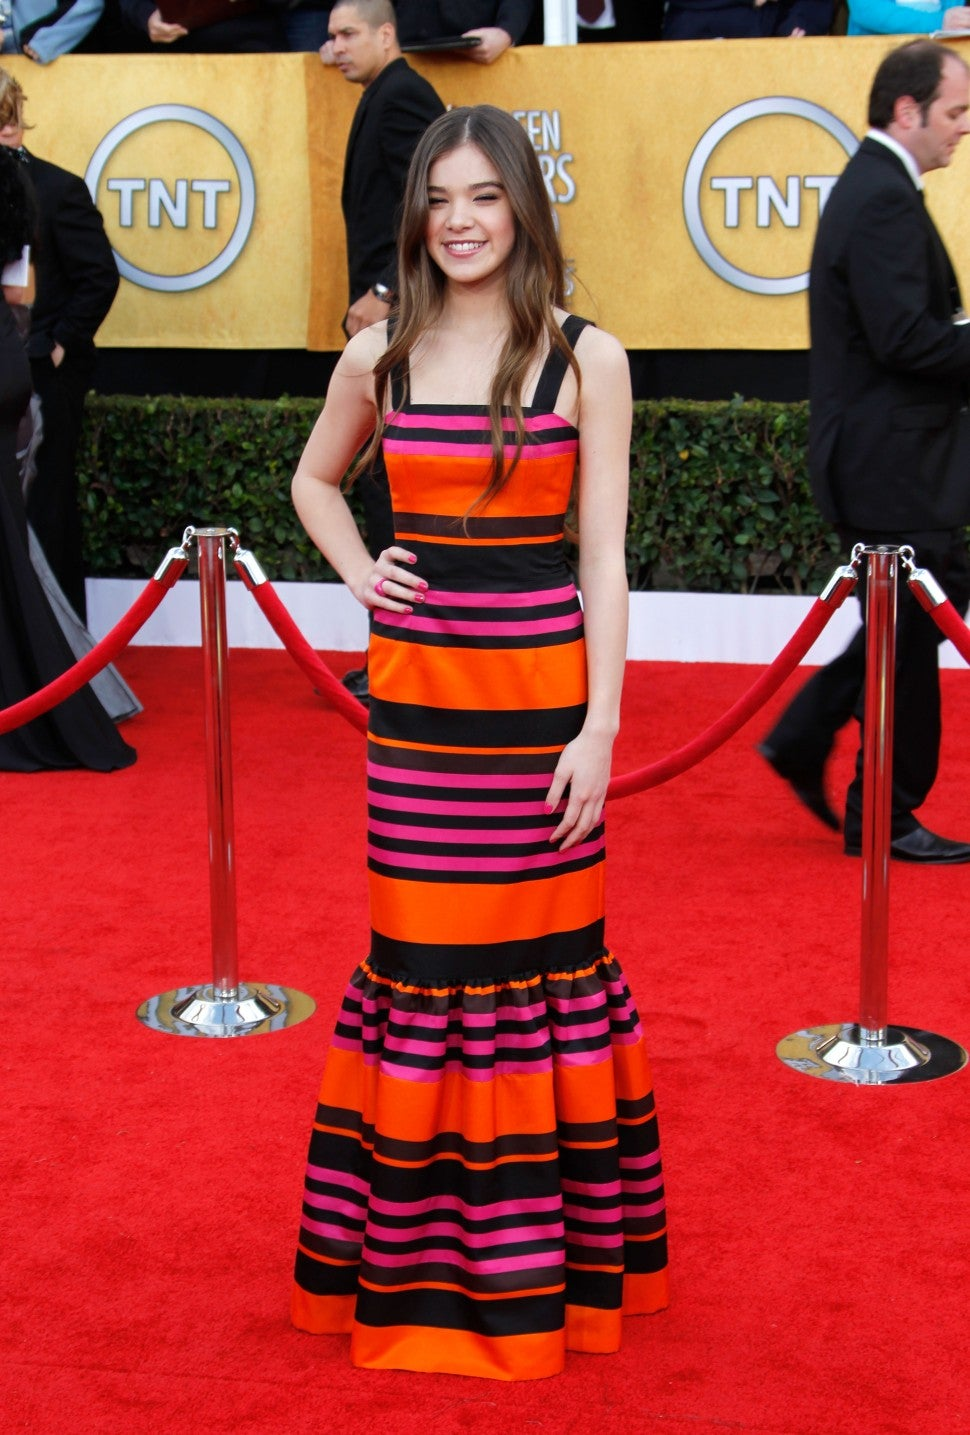 Hailee Steinfeld at the 17th Annual Screen Actors Guild Awards